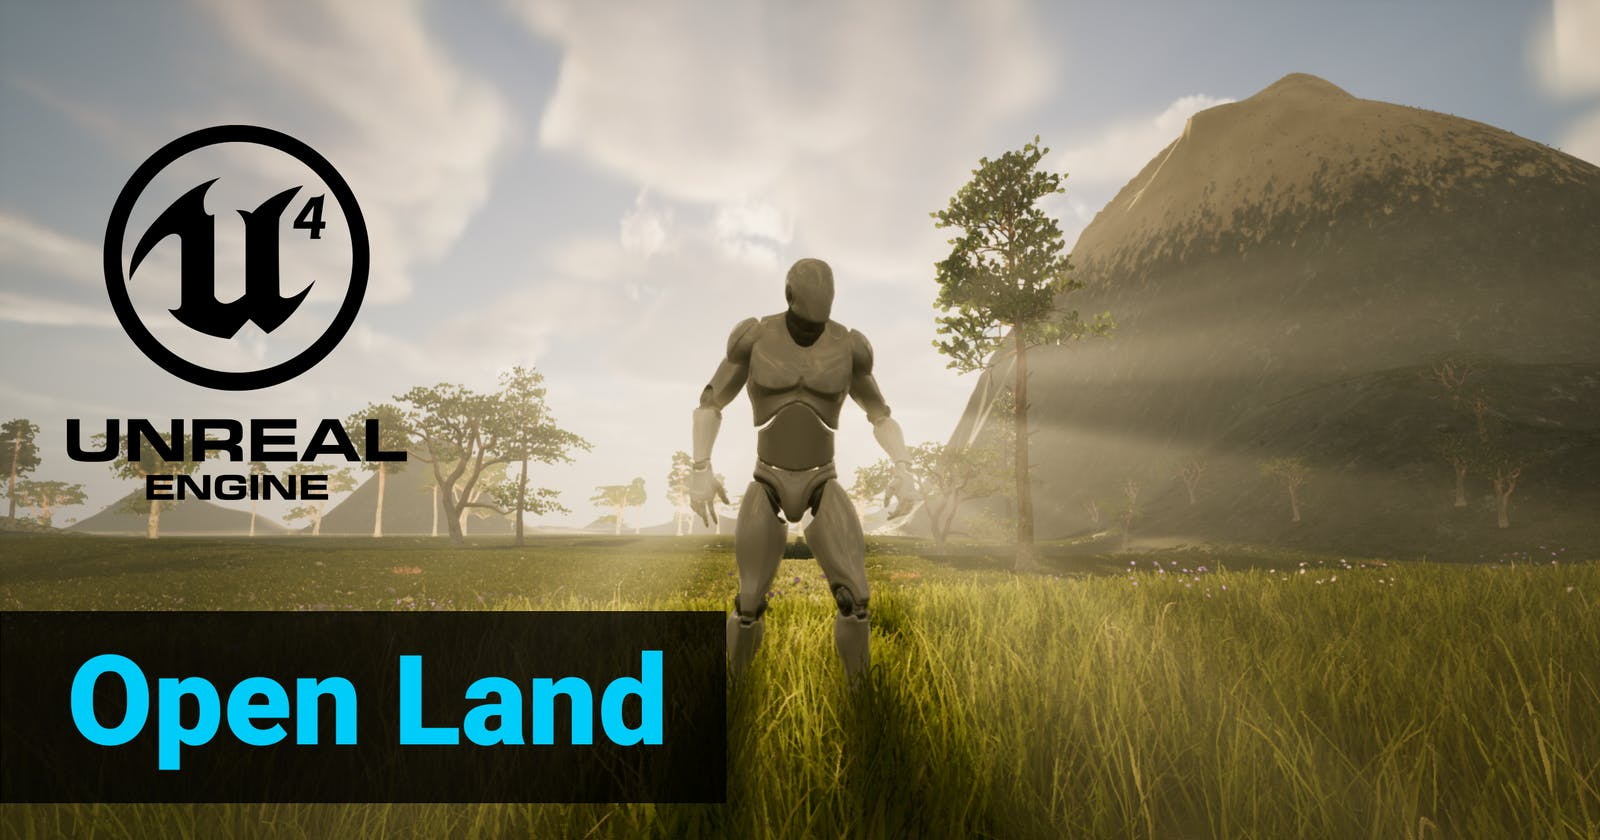 Launching Open Land for Unreal Engine